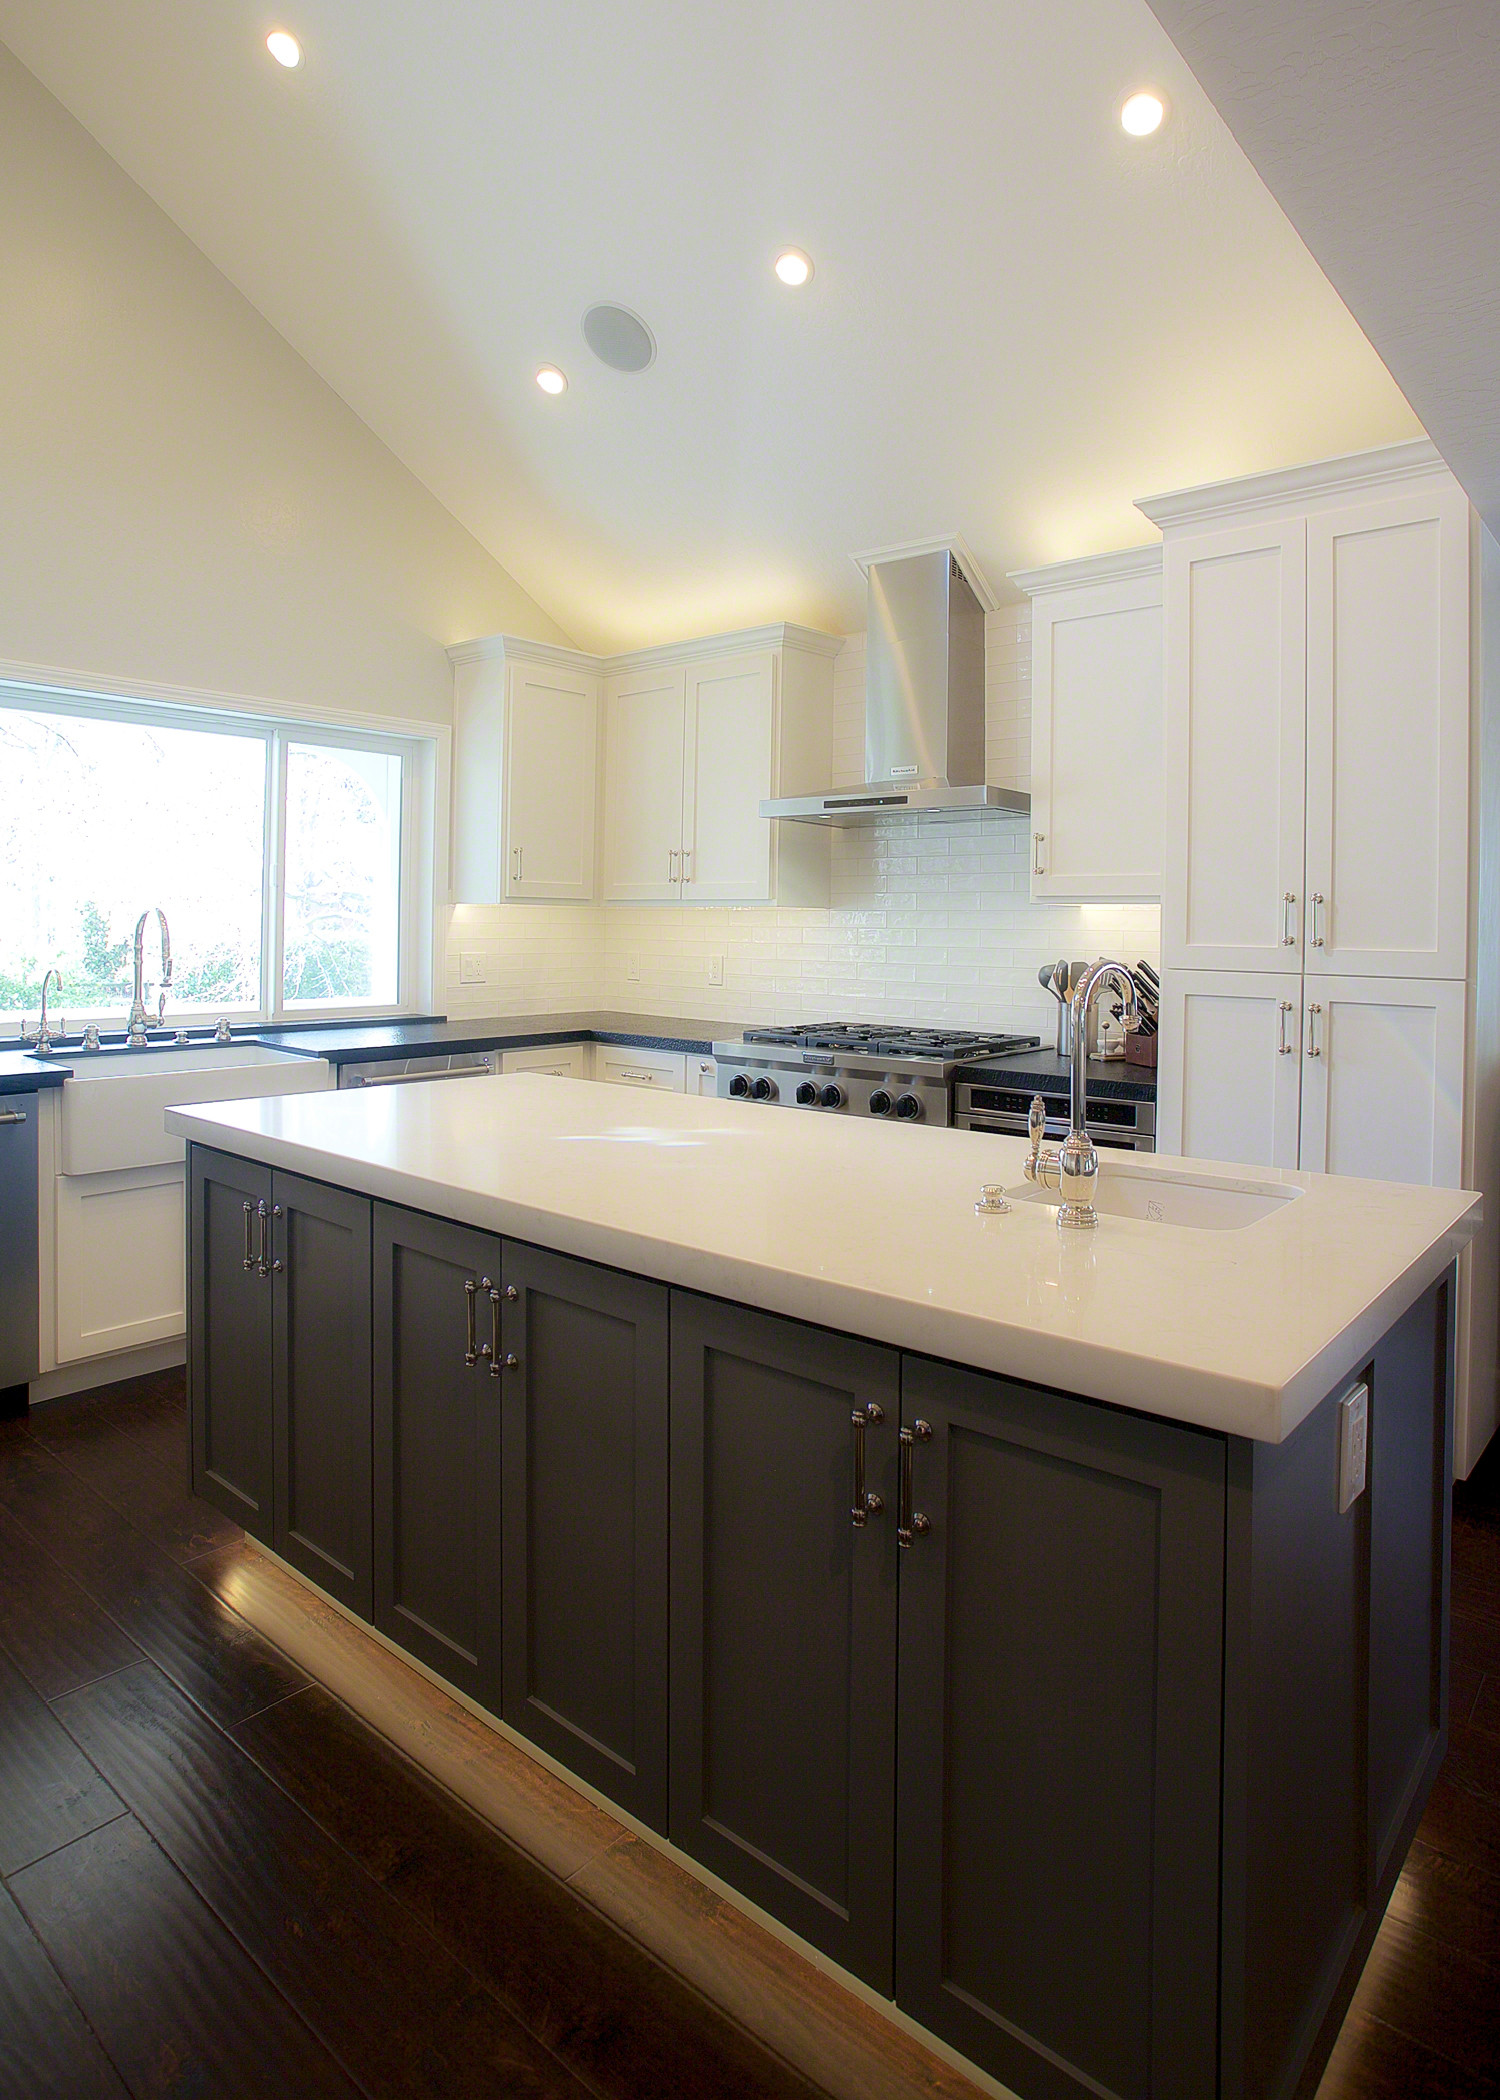 Kitchen Remodel: Before & After